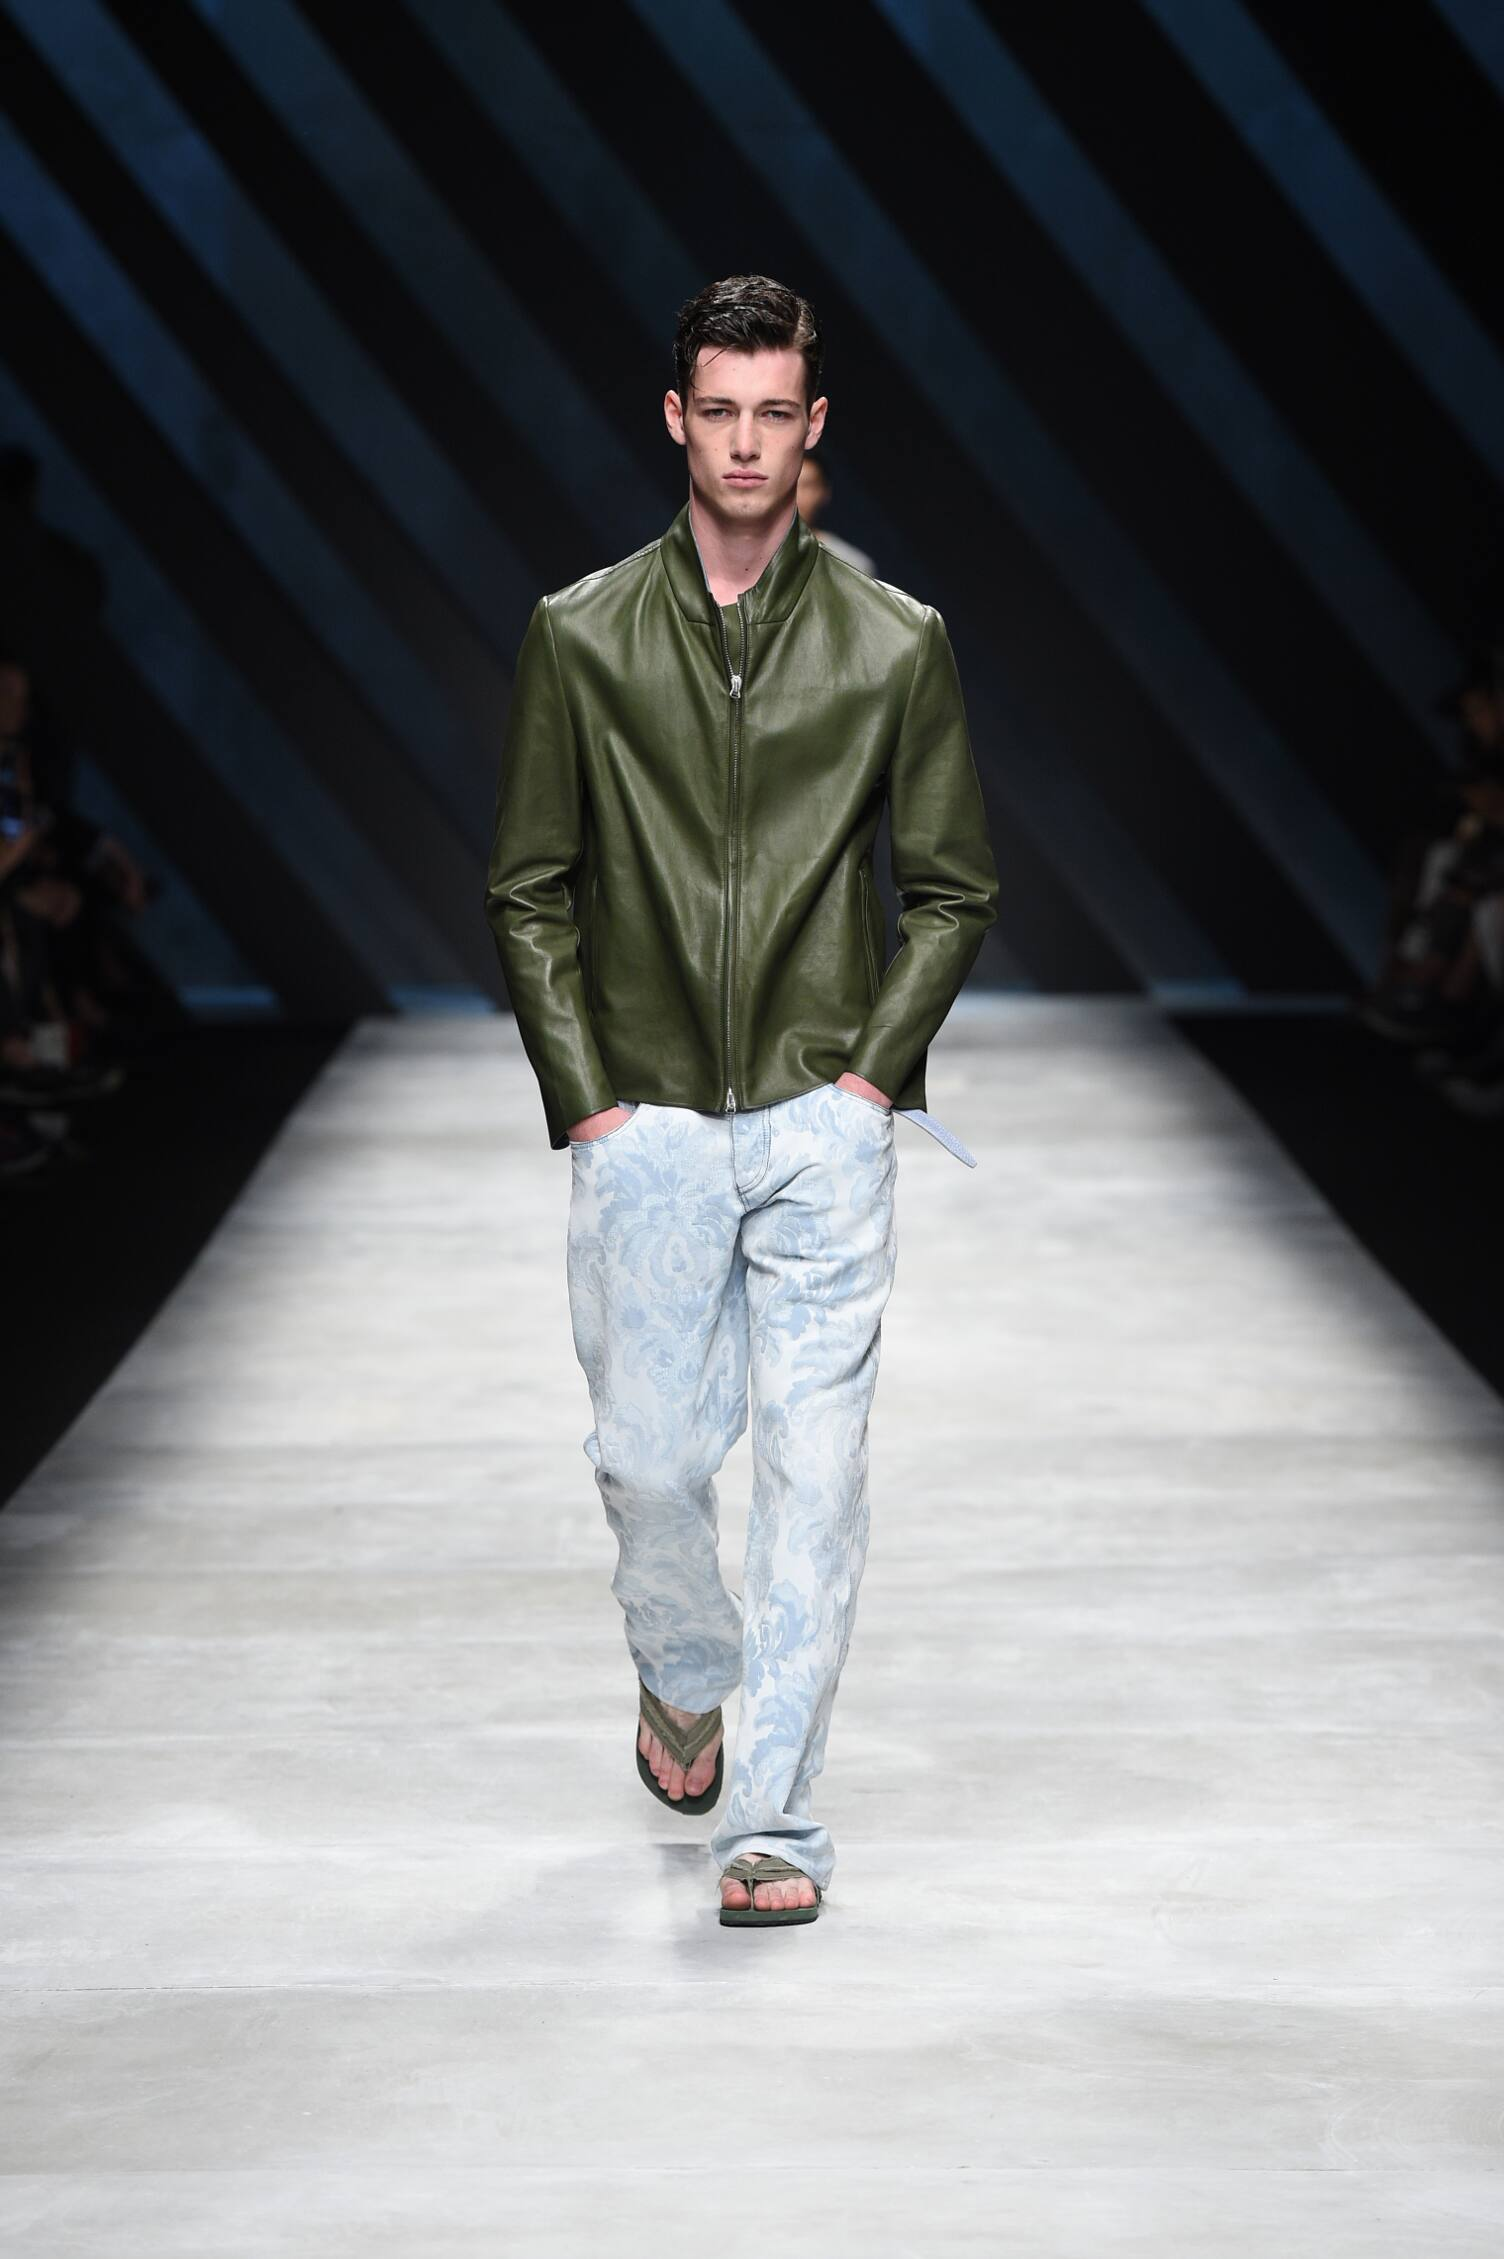 Runway Ermanno Scervino Spring Summer 2016 Men's Collection Milan Fashion Week